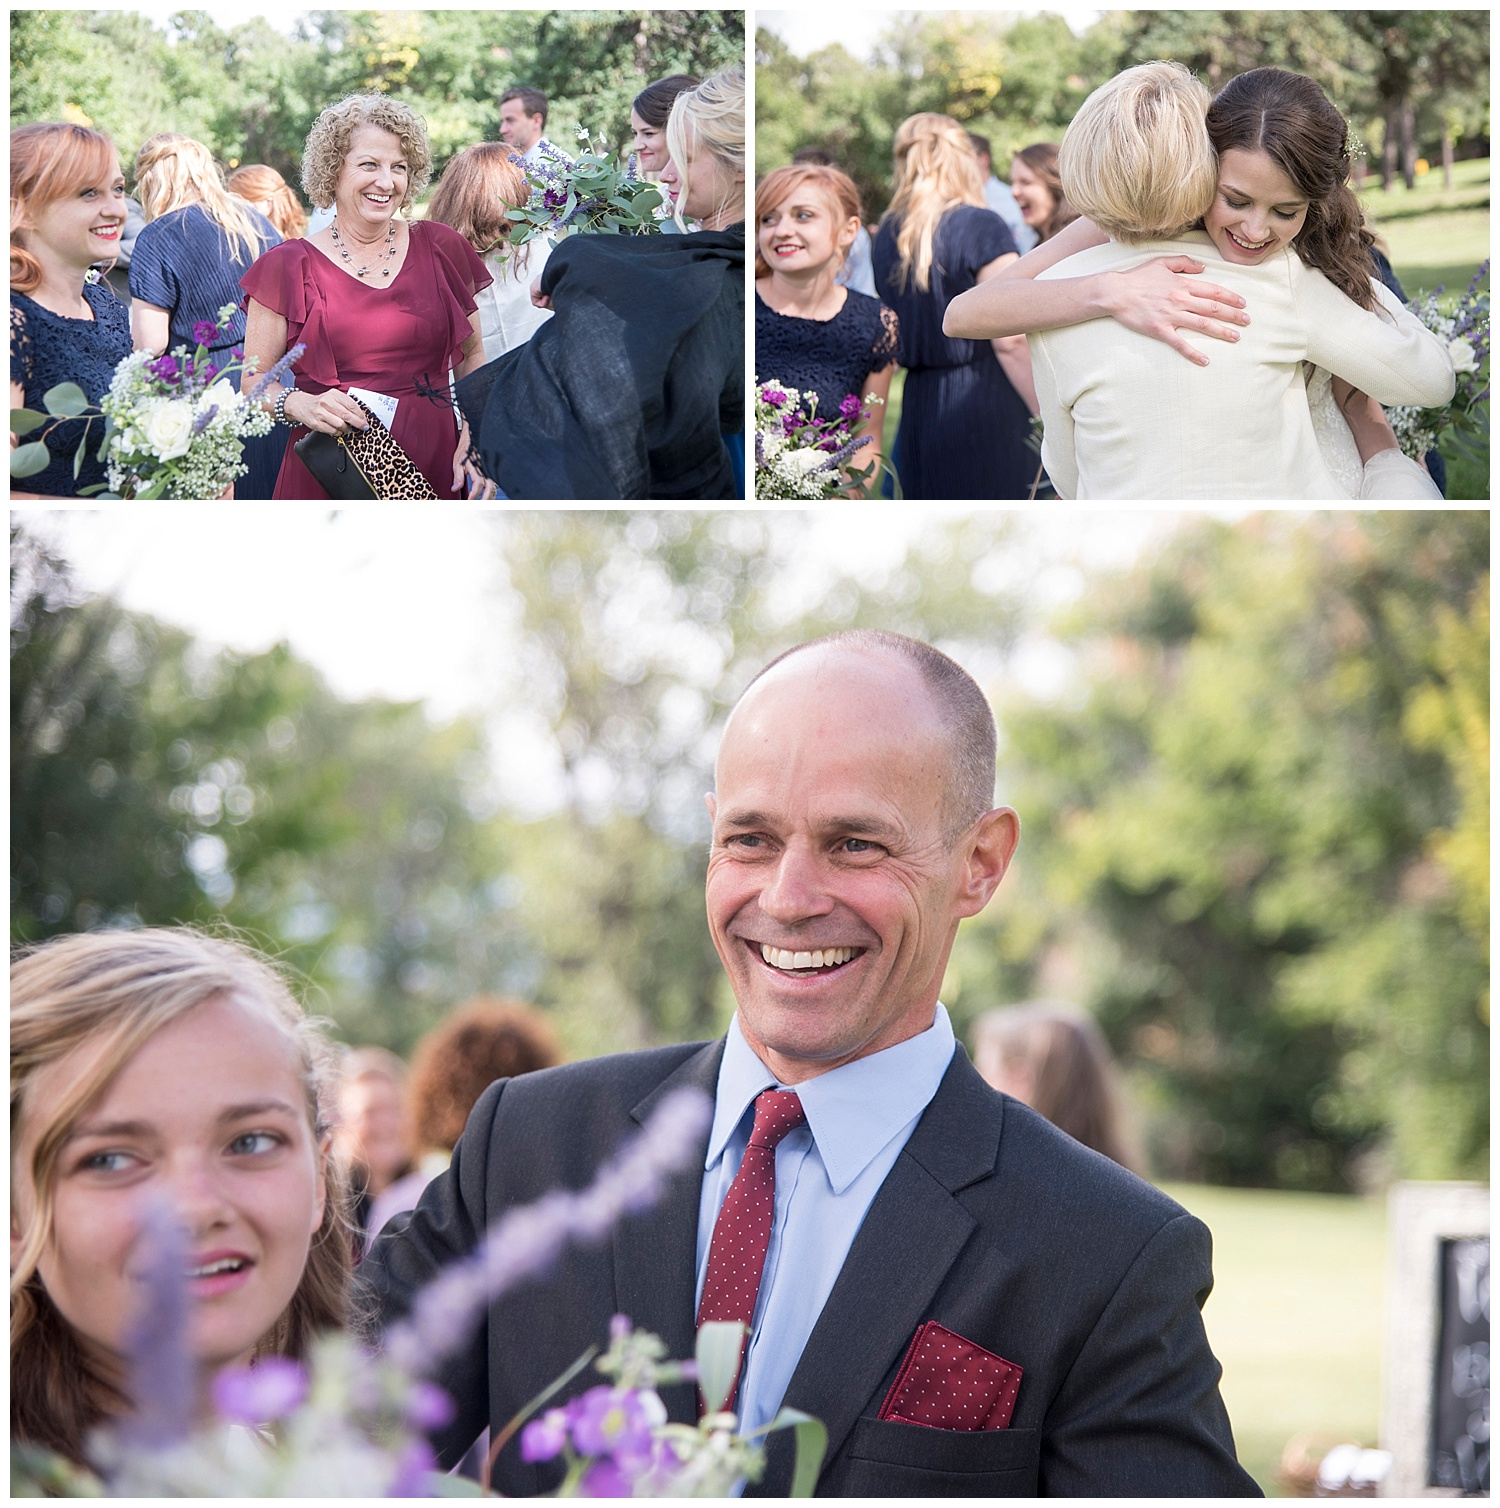 Smiling Father of the Bride | Bethany and Jono's Intimate DIY Wedding | Colorado Springs Wedding Photographer | Farm Wedding Photographer | Apollo Fields Wedding Photojournalism